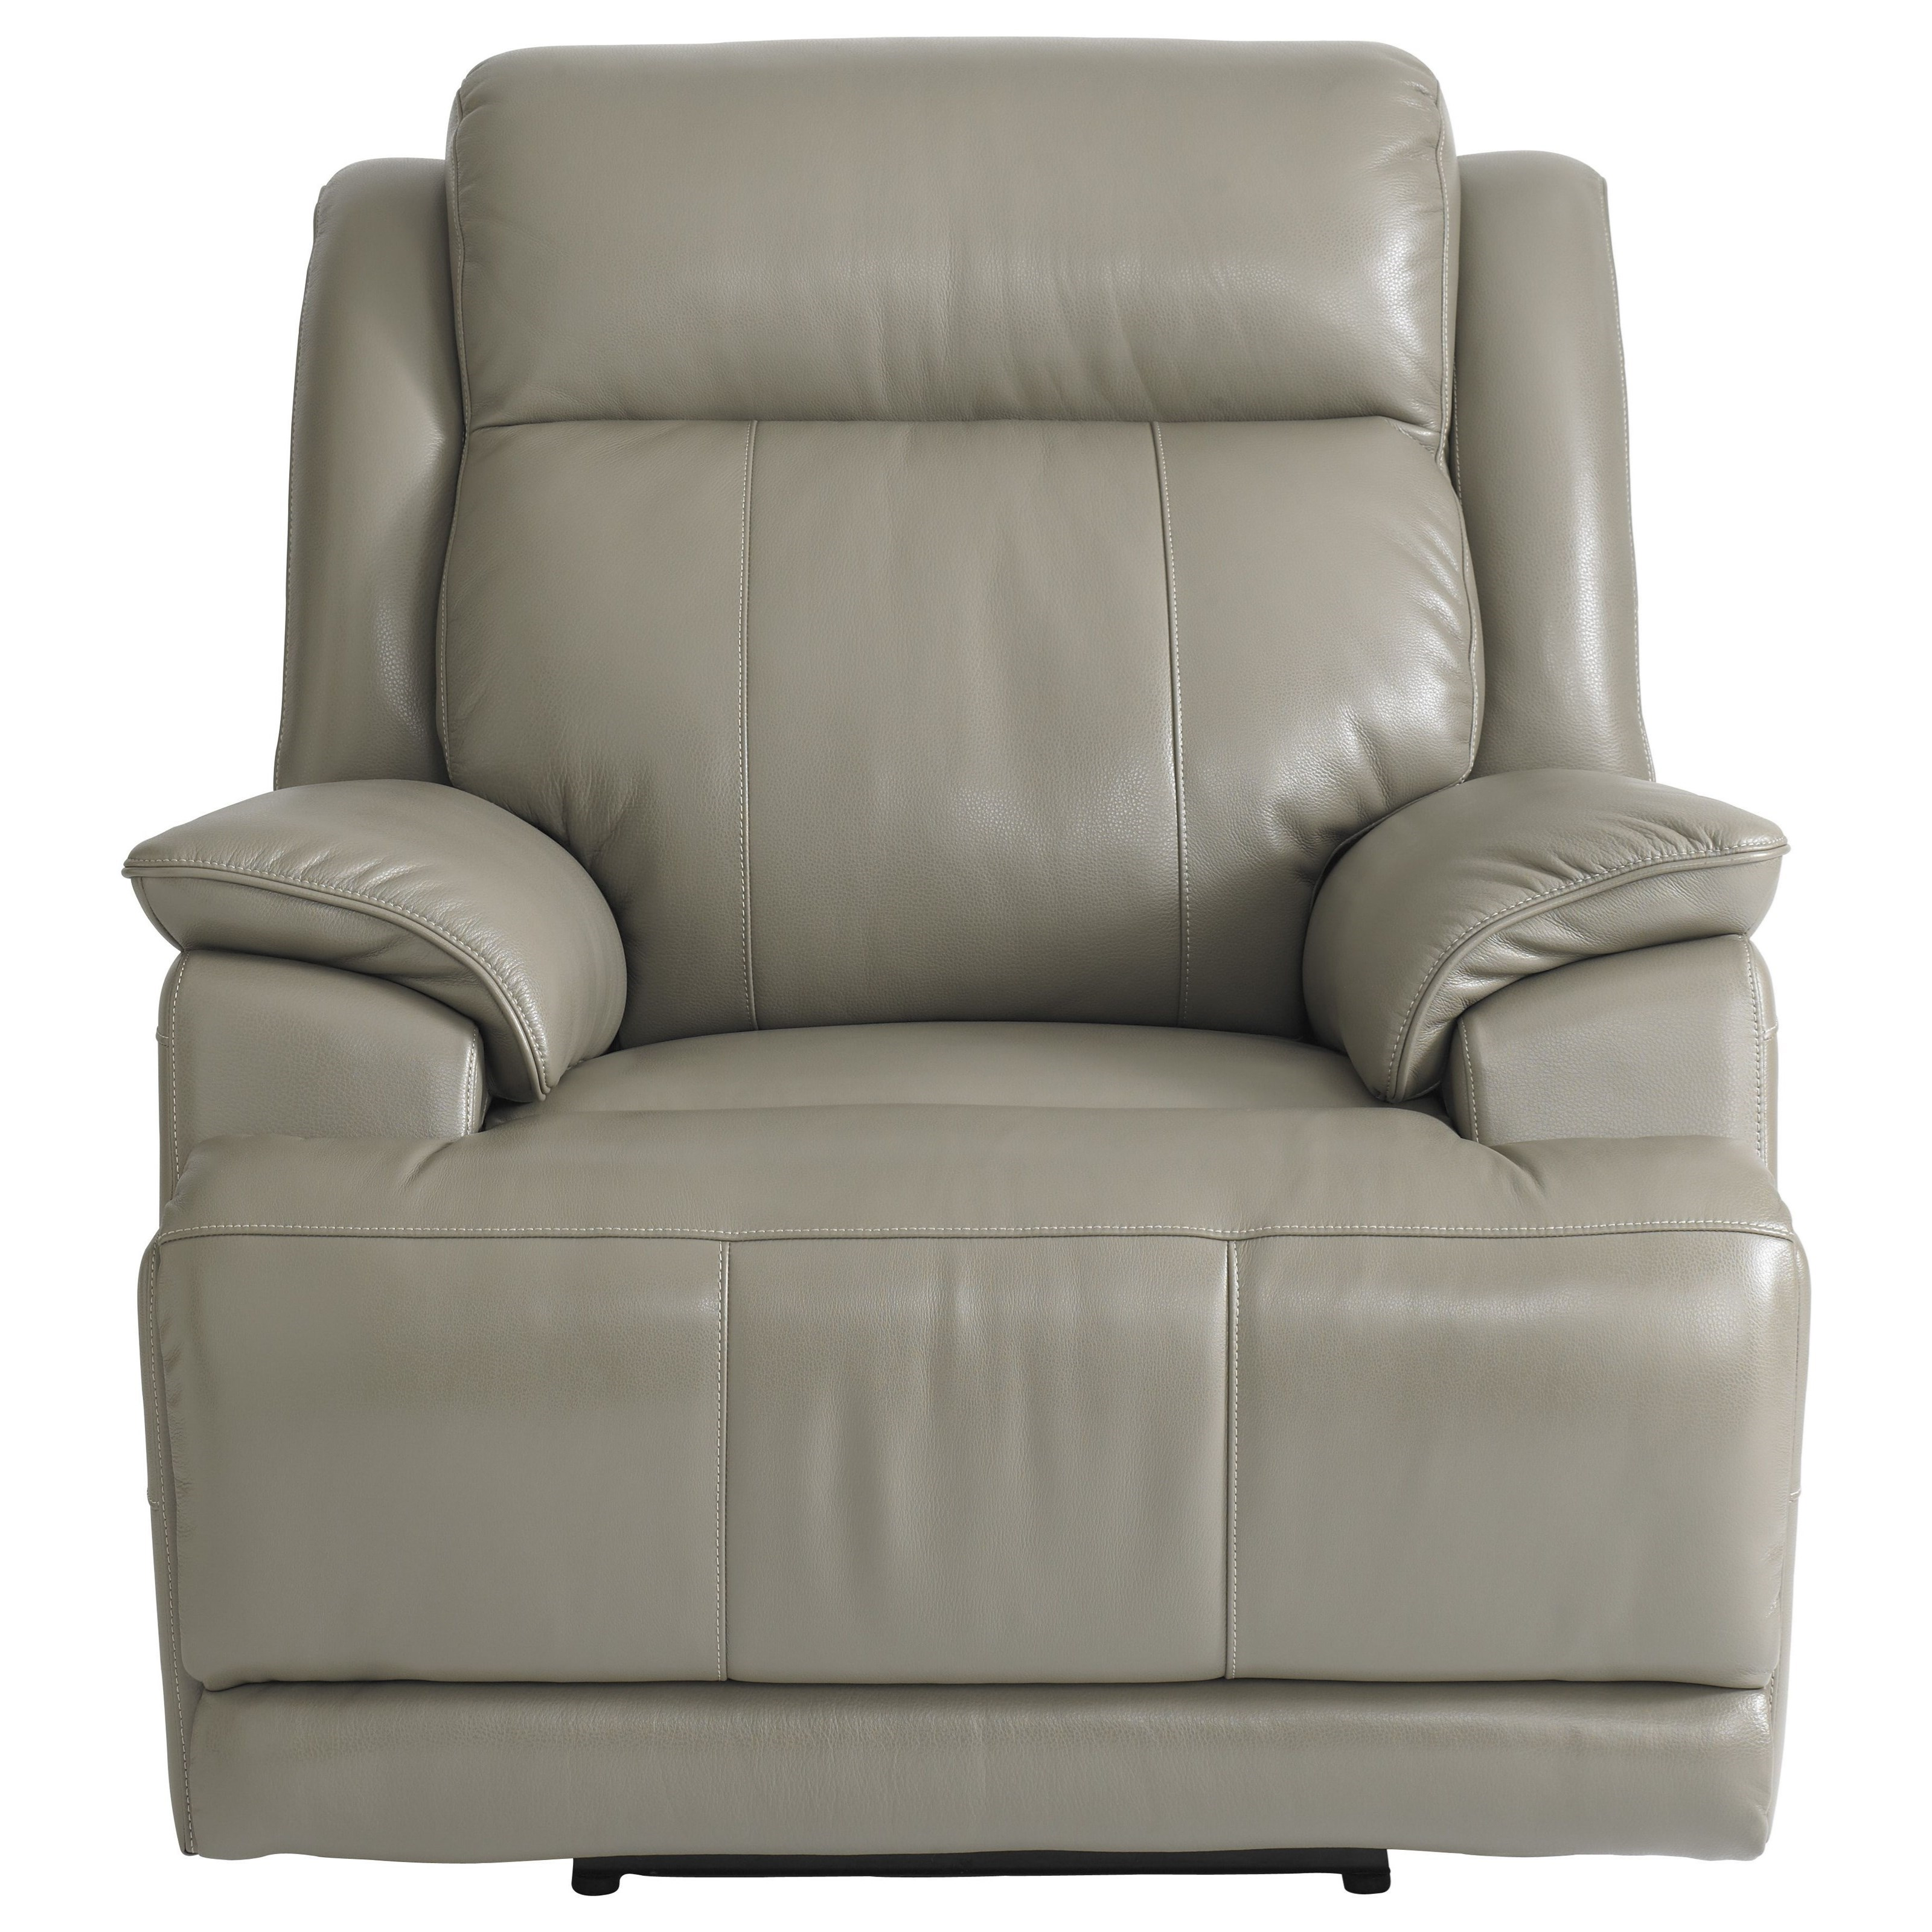 Club Level - Carson Power Lay-Flat Recliner by Bassett at Bassett of Cool Springs